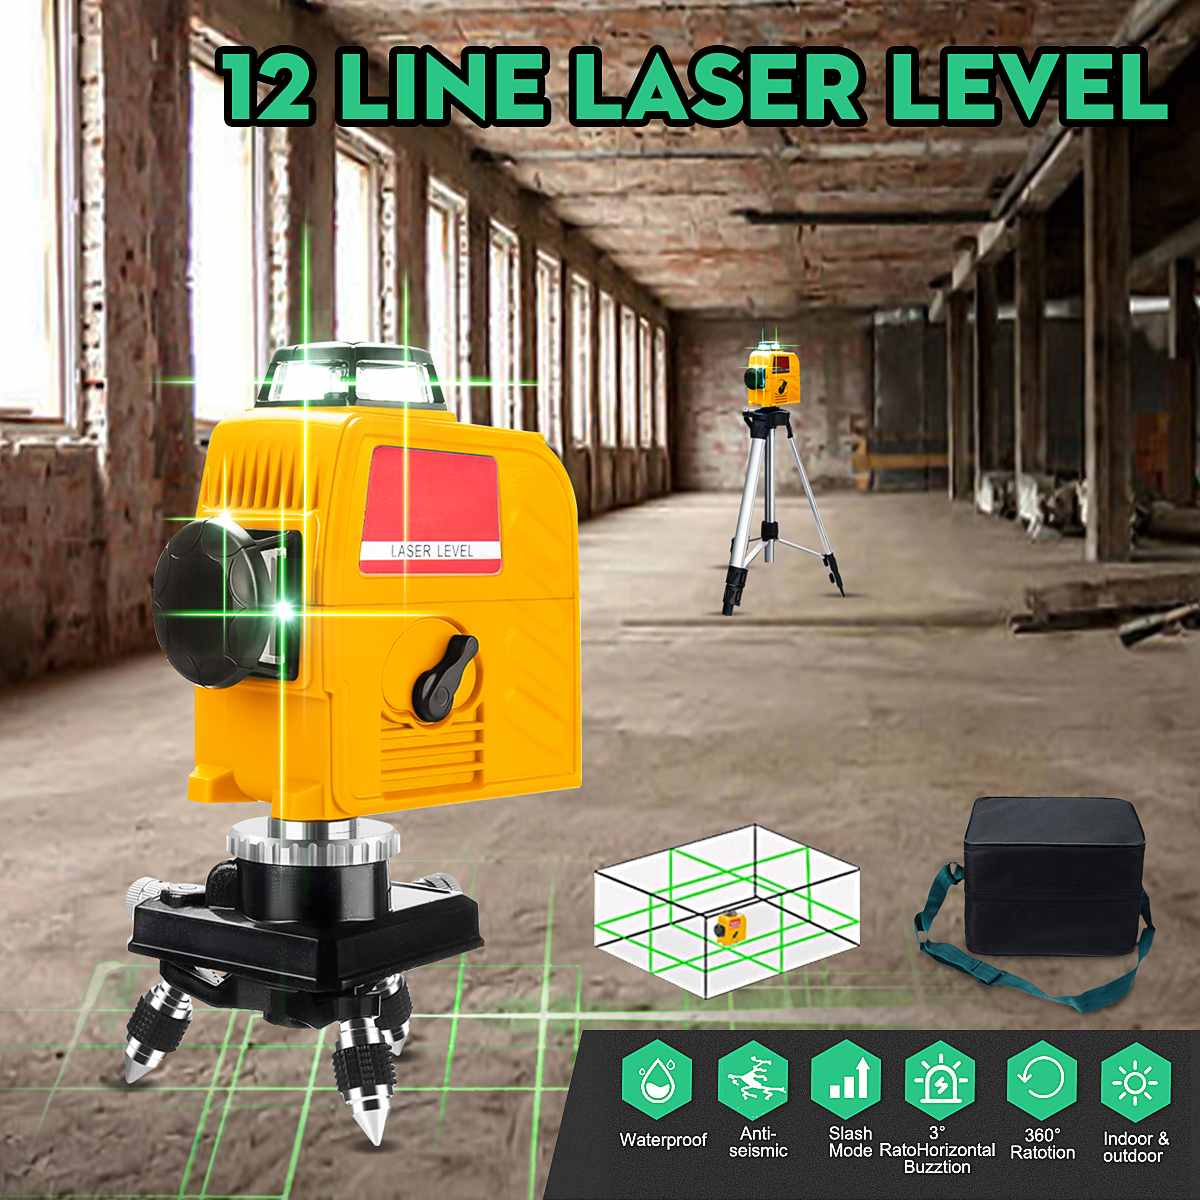 3D 12 Lines Green/Blue Line Laser-Level 360 Degree Cross Self Leveling Engineer Waterproof  IP-54 AC 100-240V Wear-resisting3D 12 Lines Green/Blue Line Laser-Level 360 Degree Cross Self Leveling Engineer Waterproof  IP-54 AC 100-240V Wear-resisting